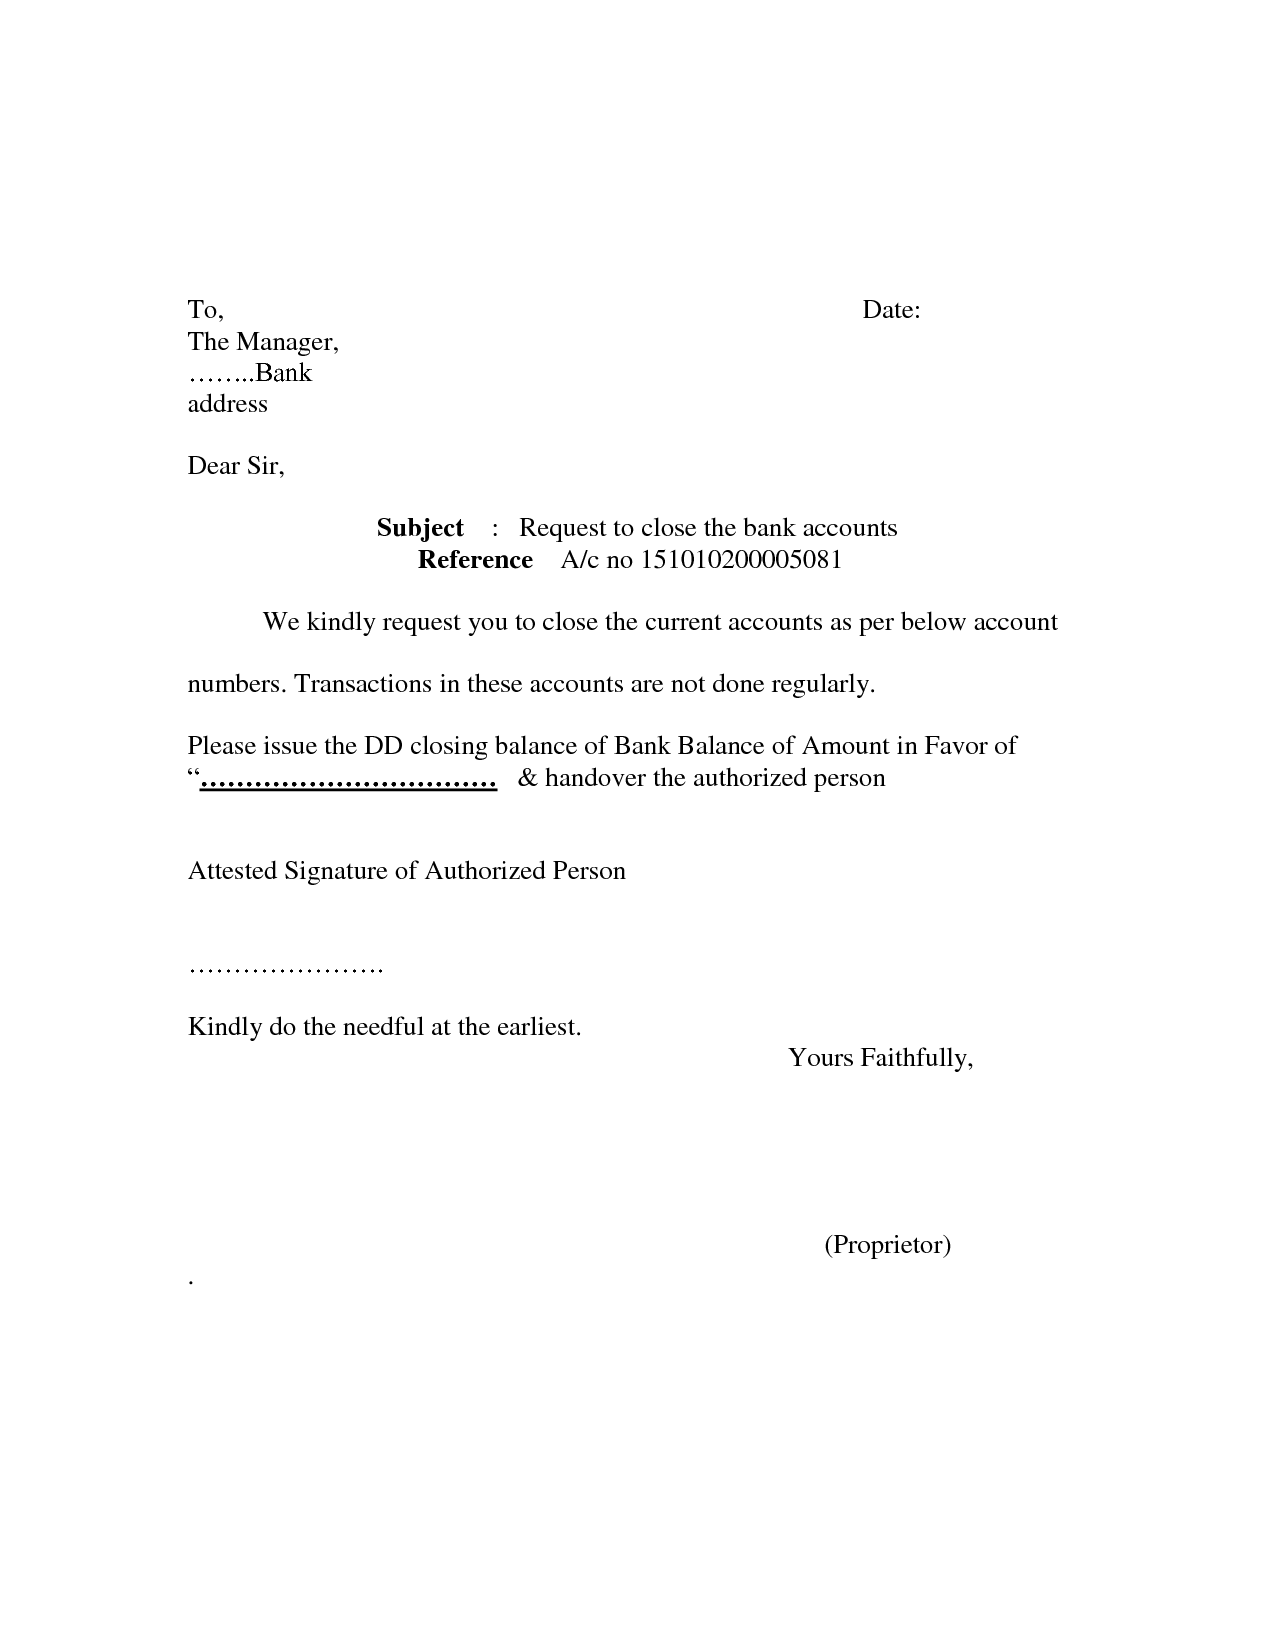 Bank account closing letter format sample cover templates for Account closure letter template